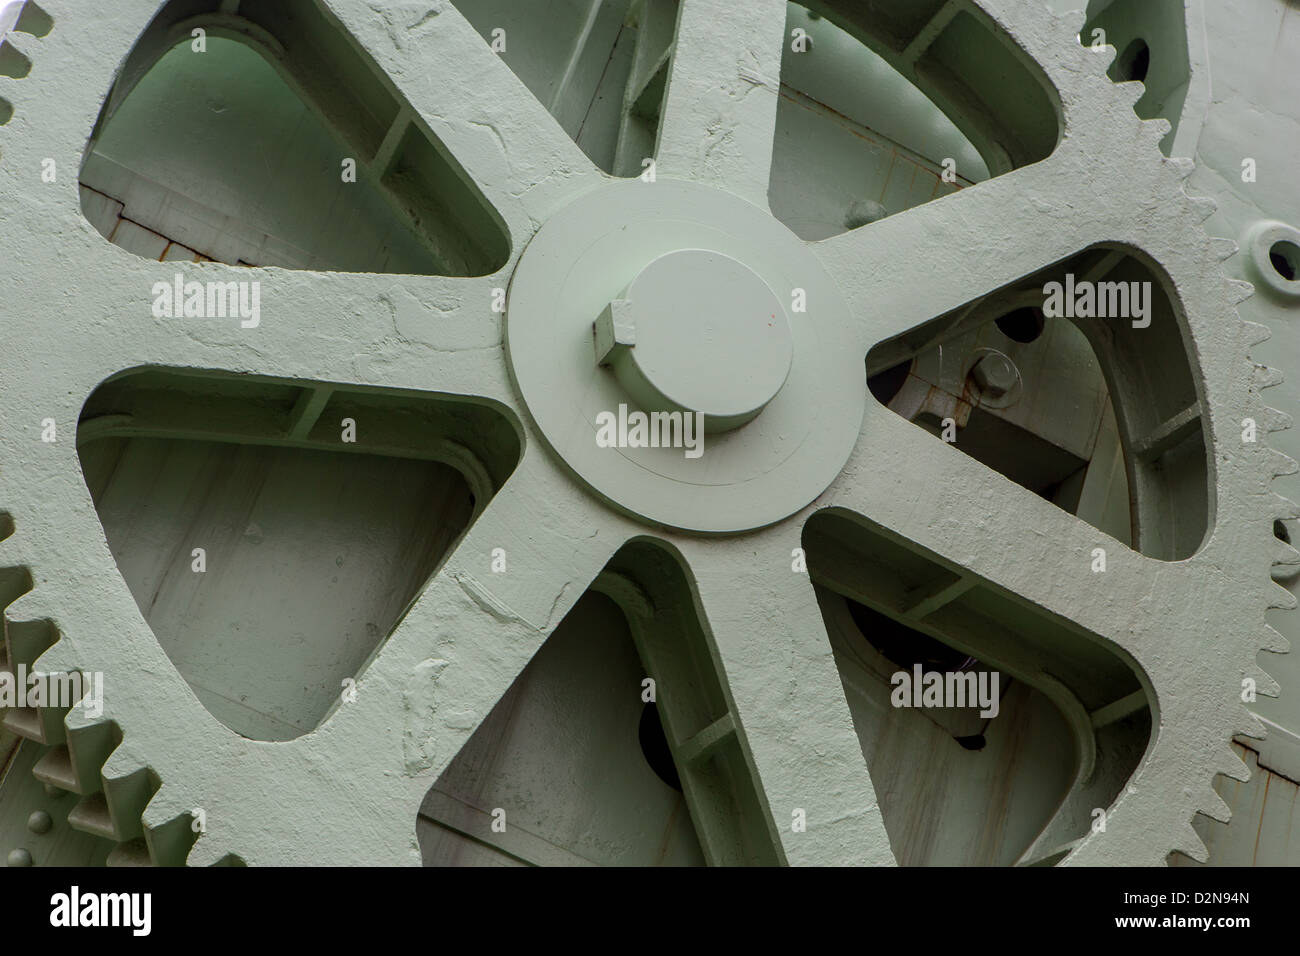 A large green cog wheel in a naval dockyard - Stock Image